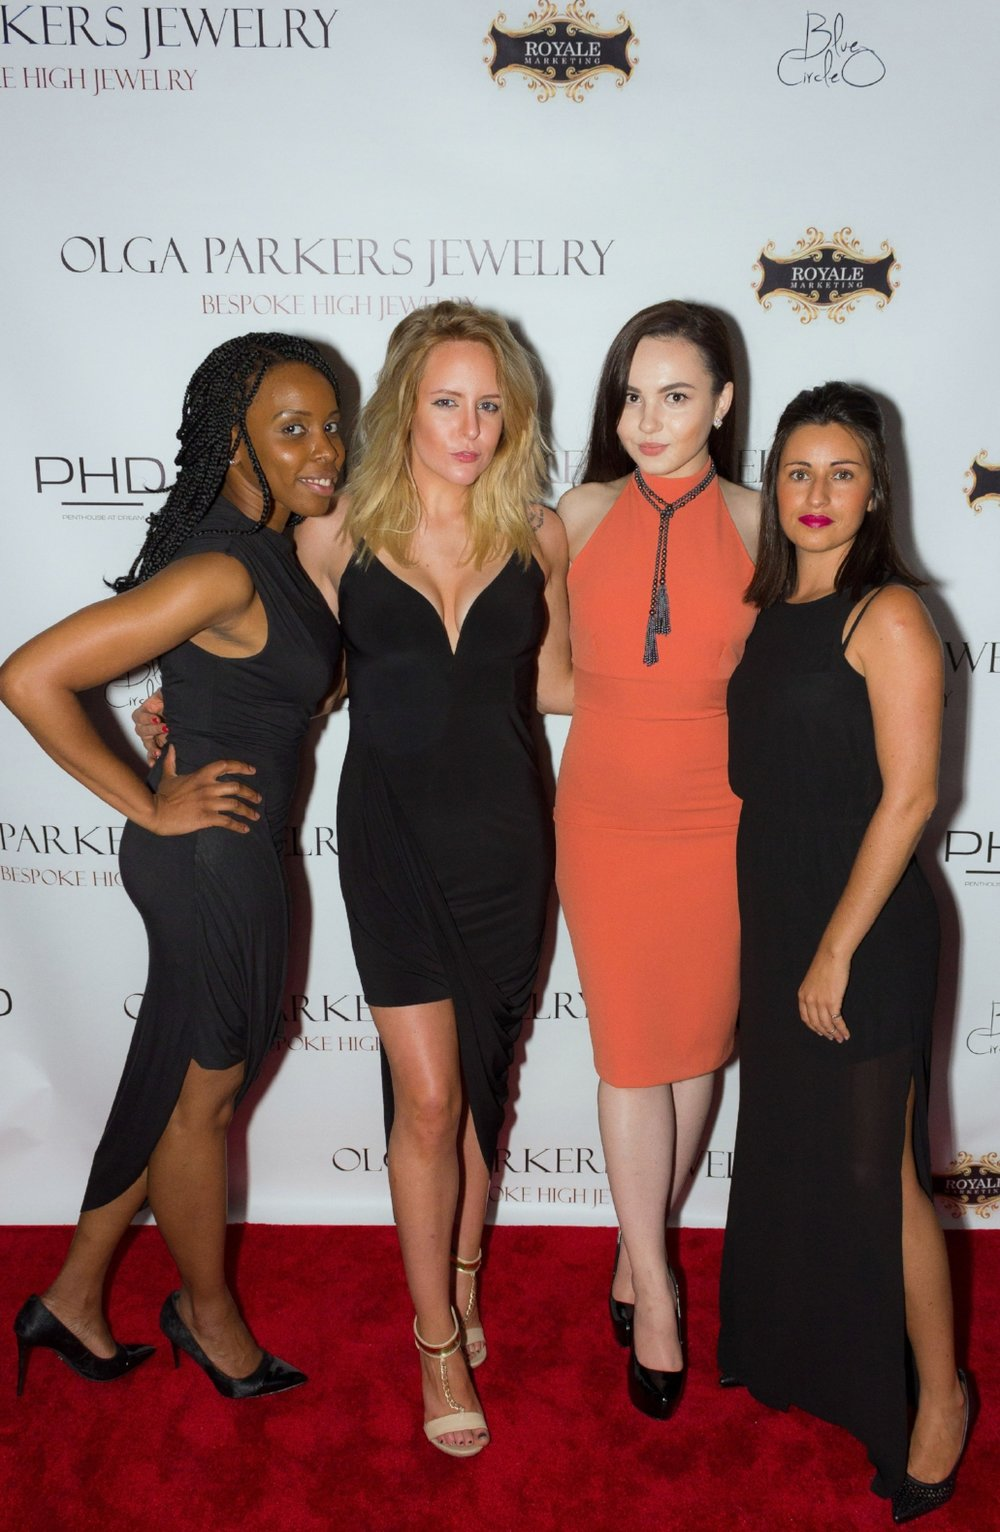 Nicole Syatchan, Stephanie Bishop, Olga Gavriluk & Ines Mamede at OLGA PARKERS JEWELRY Launch